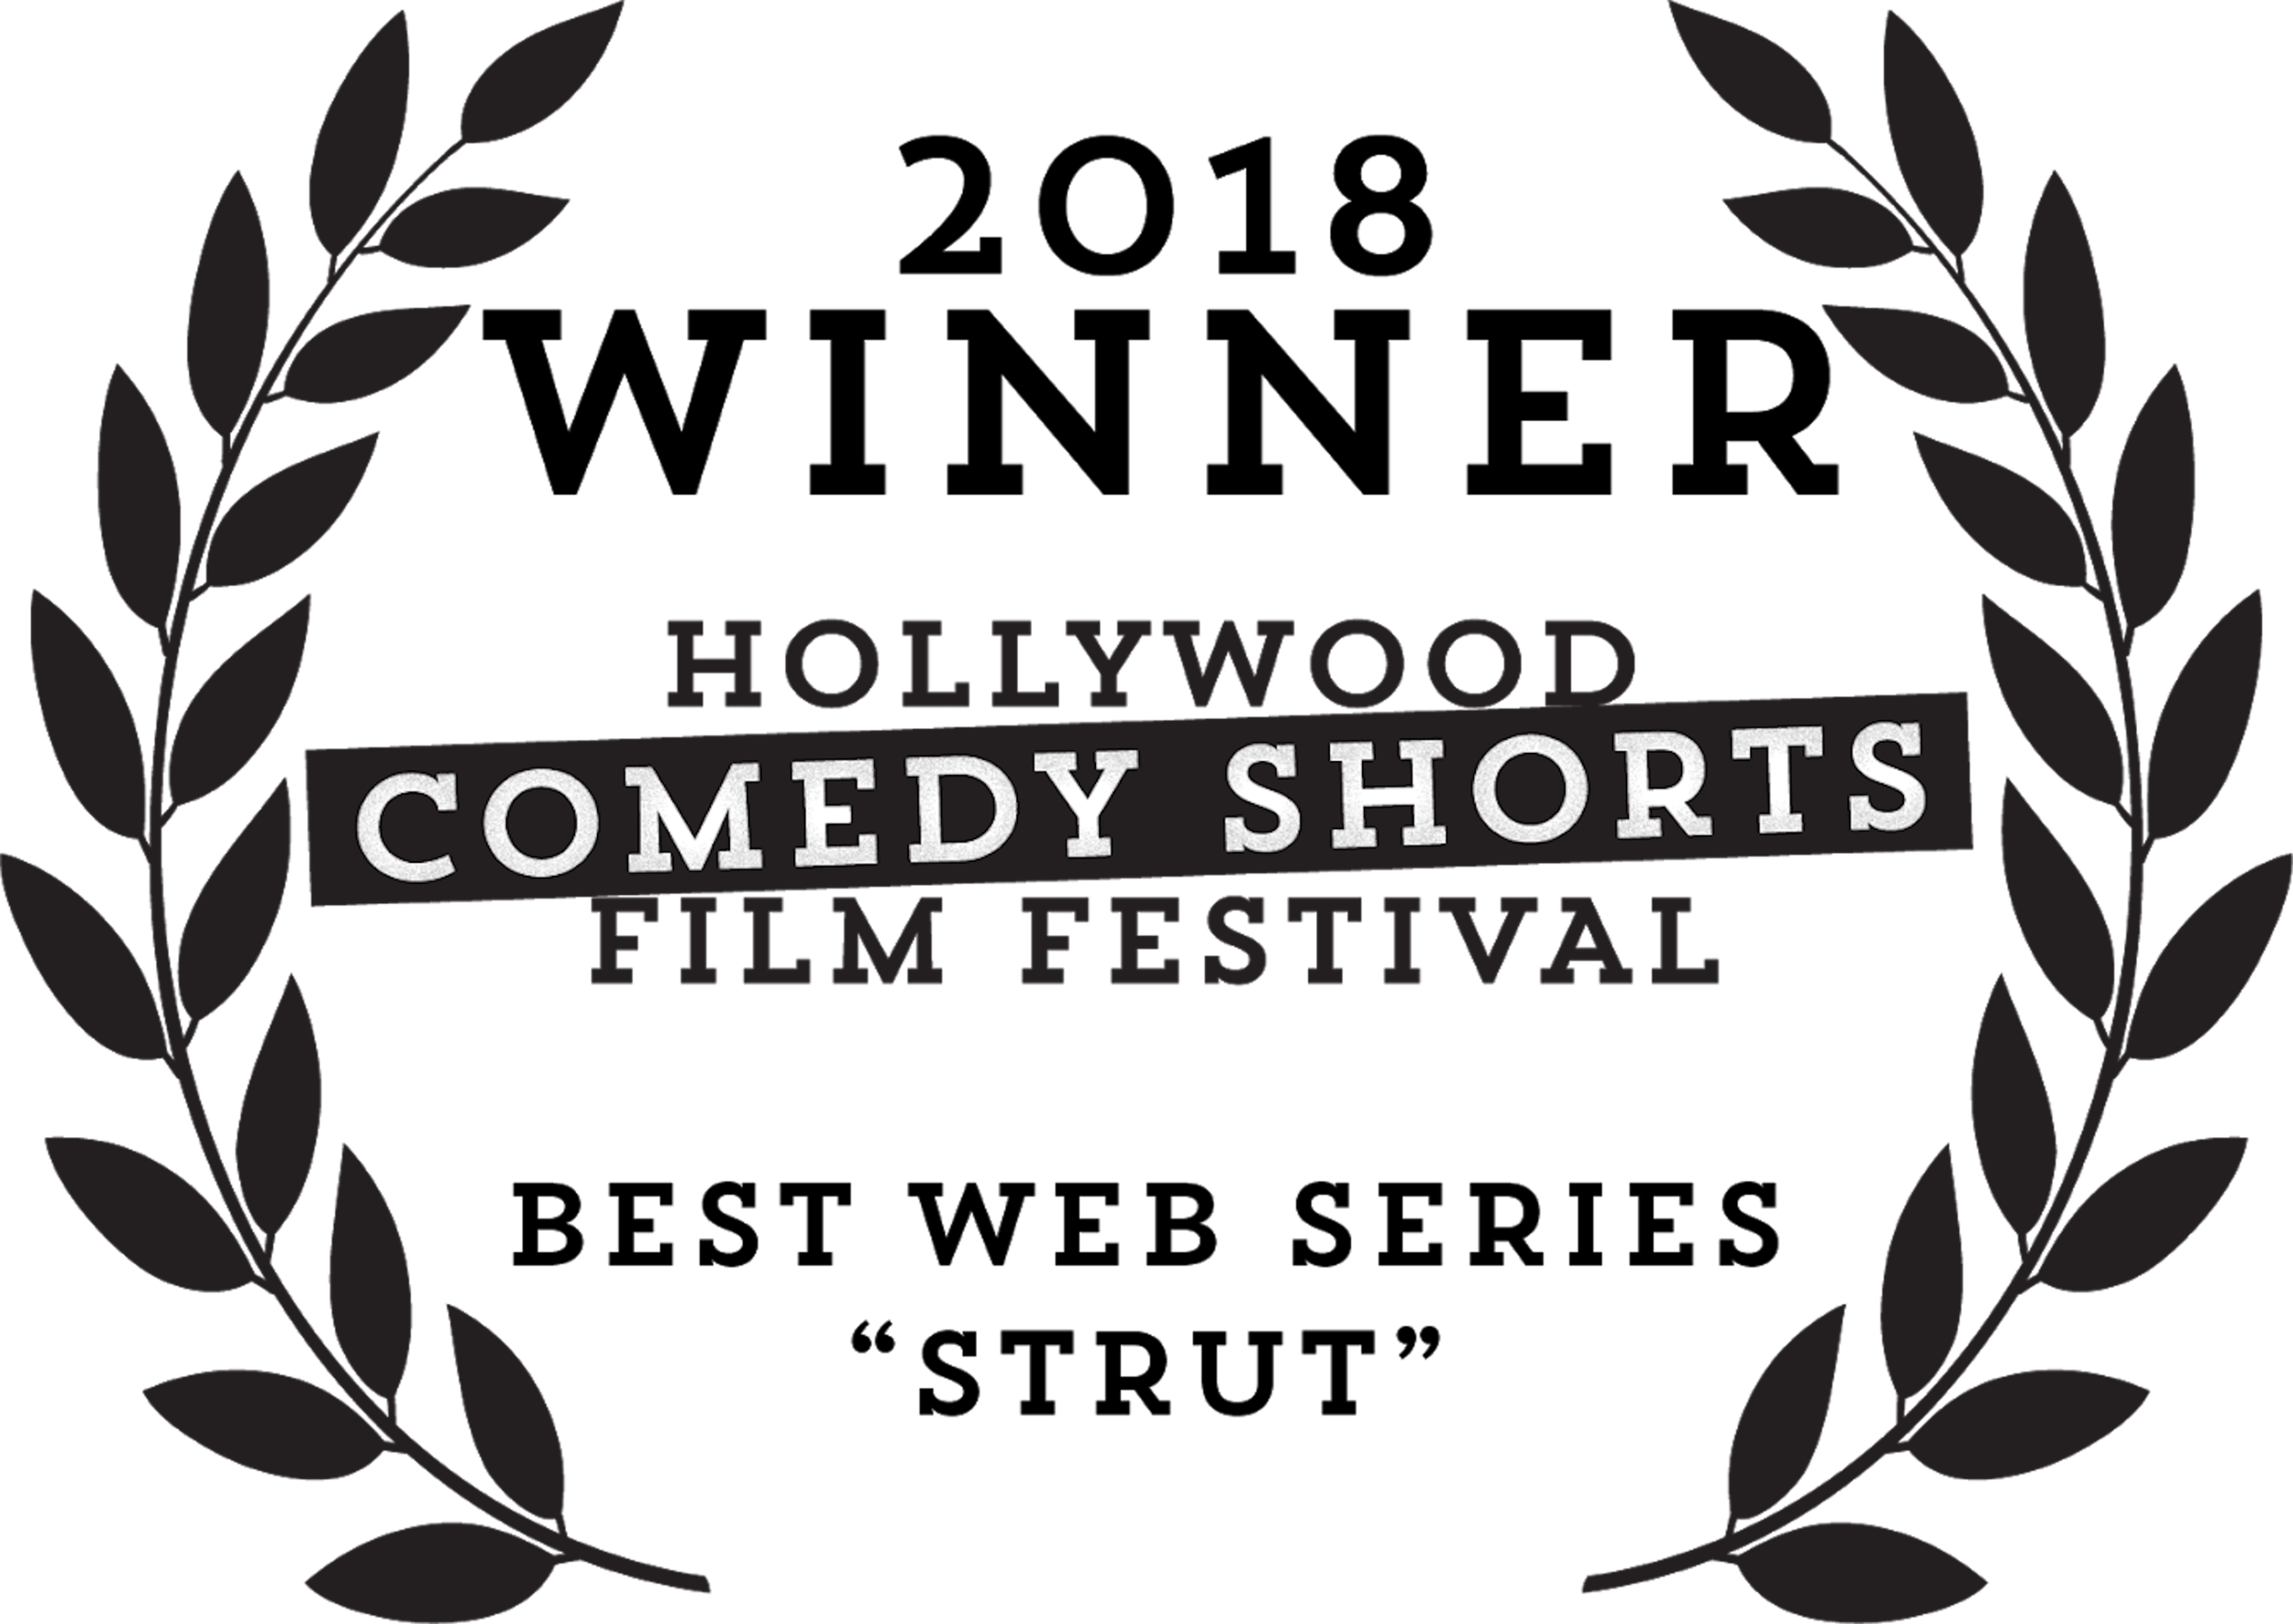 Strut - Hollywood Comedy Shorts Best Web Series - 3000 x 2125.png